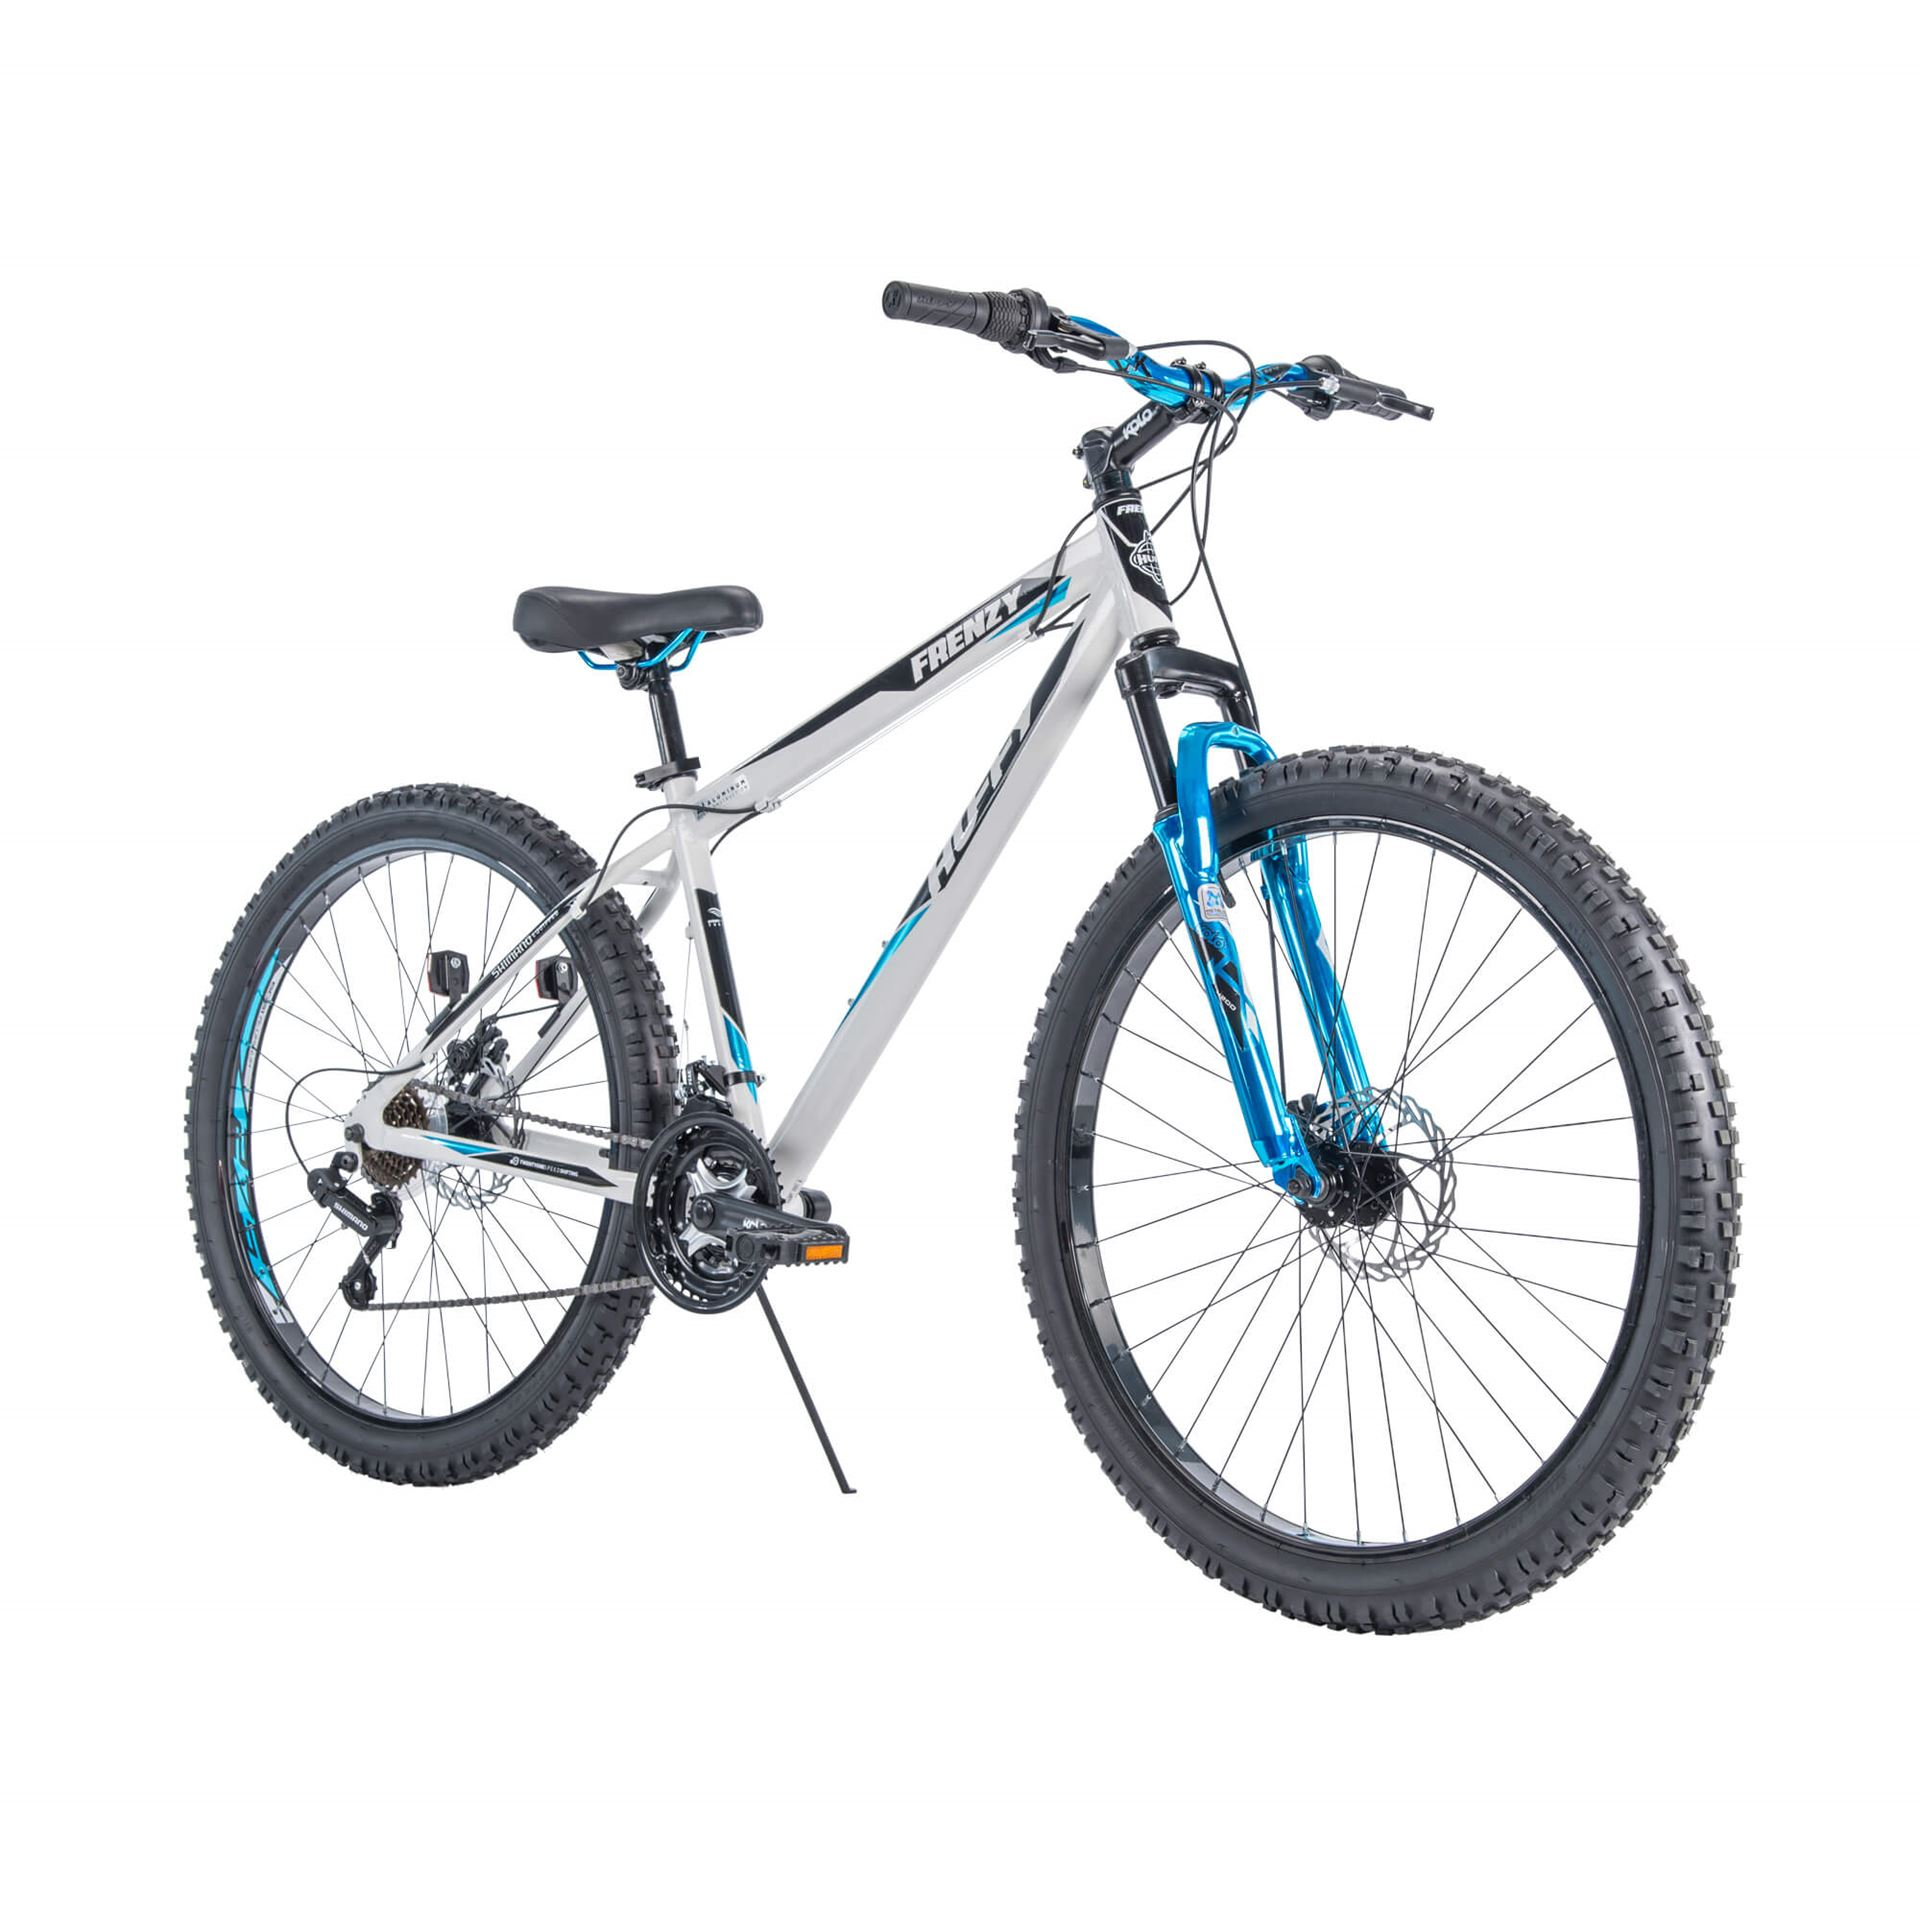 "Huffy 27.5"" Frenzy Mens Mountain Bike with Aluminum Frame, Blue"